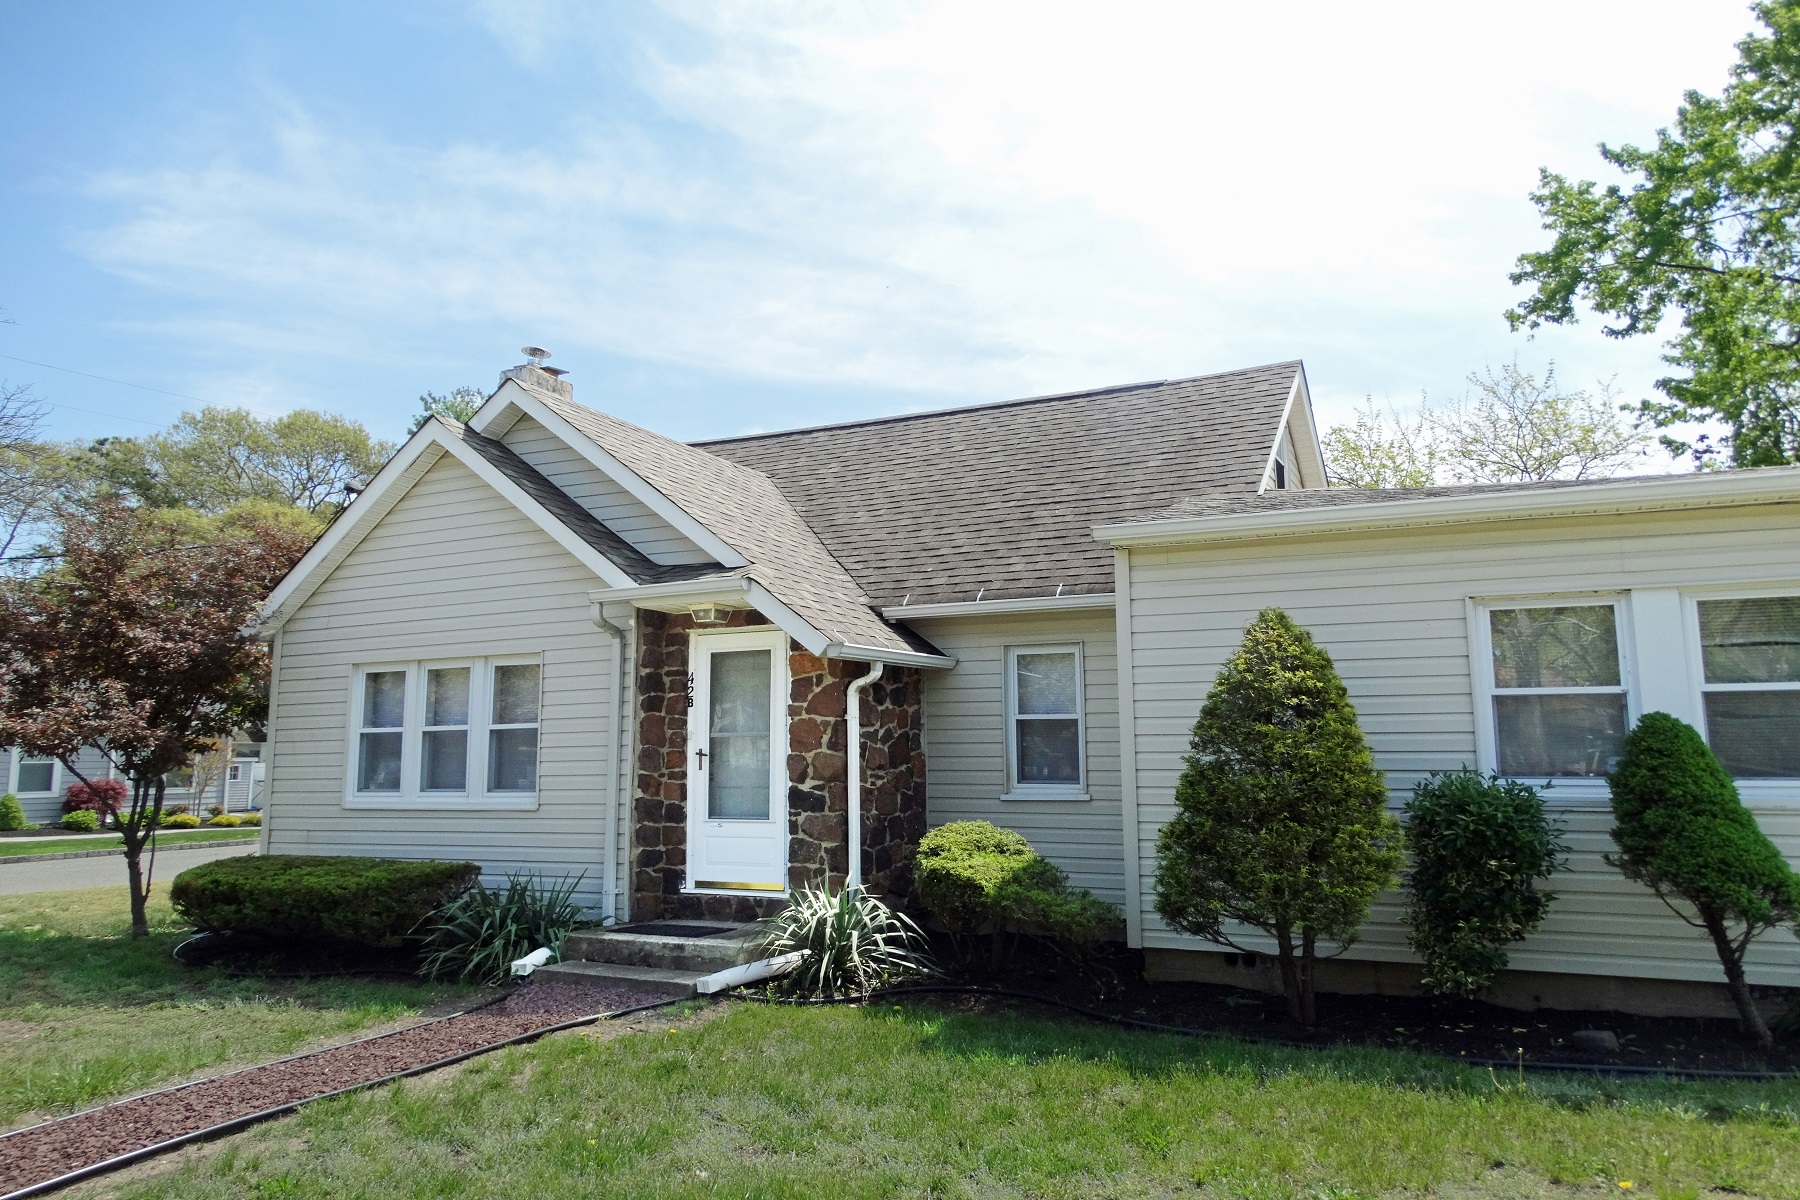 Multi-Family Homes for Sale at 42 Burton Parkway Brick, New Jersey 08723 United States